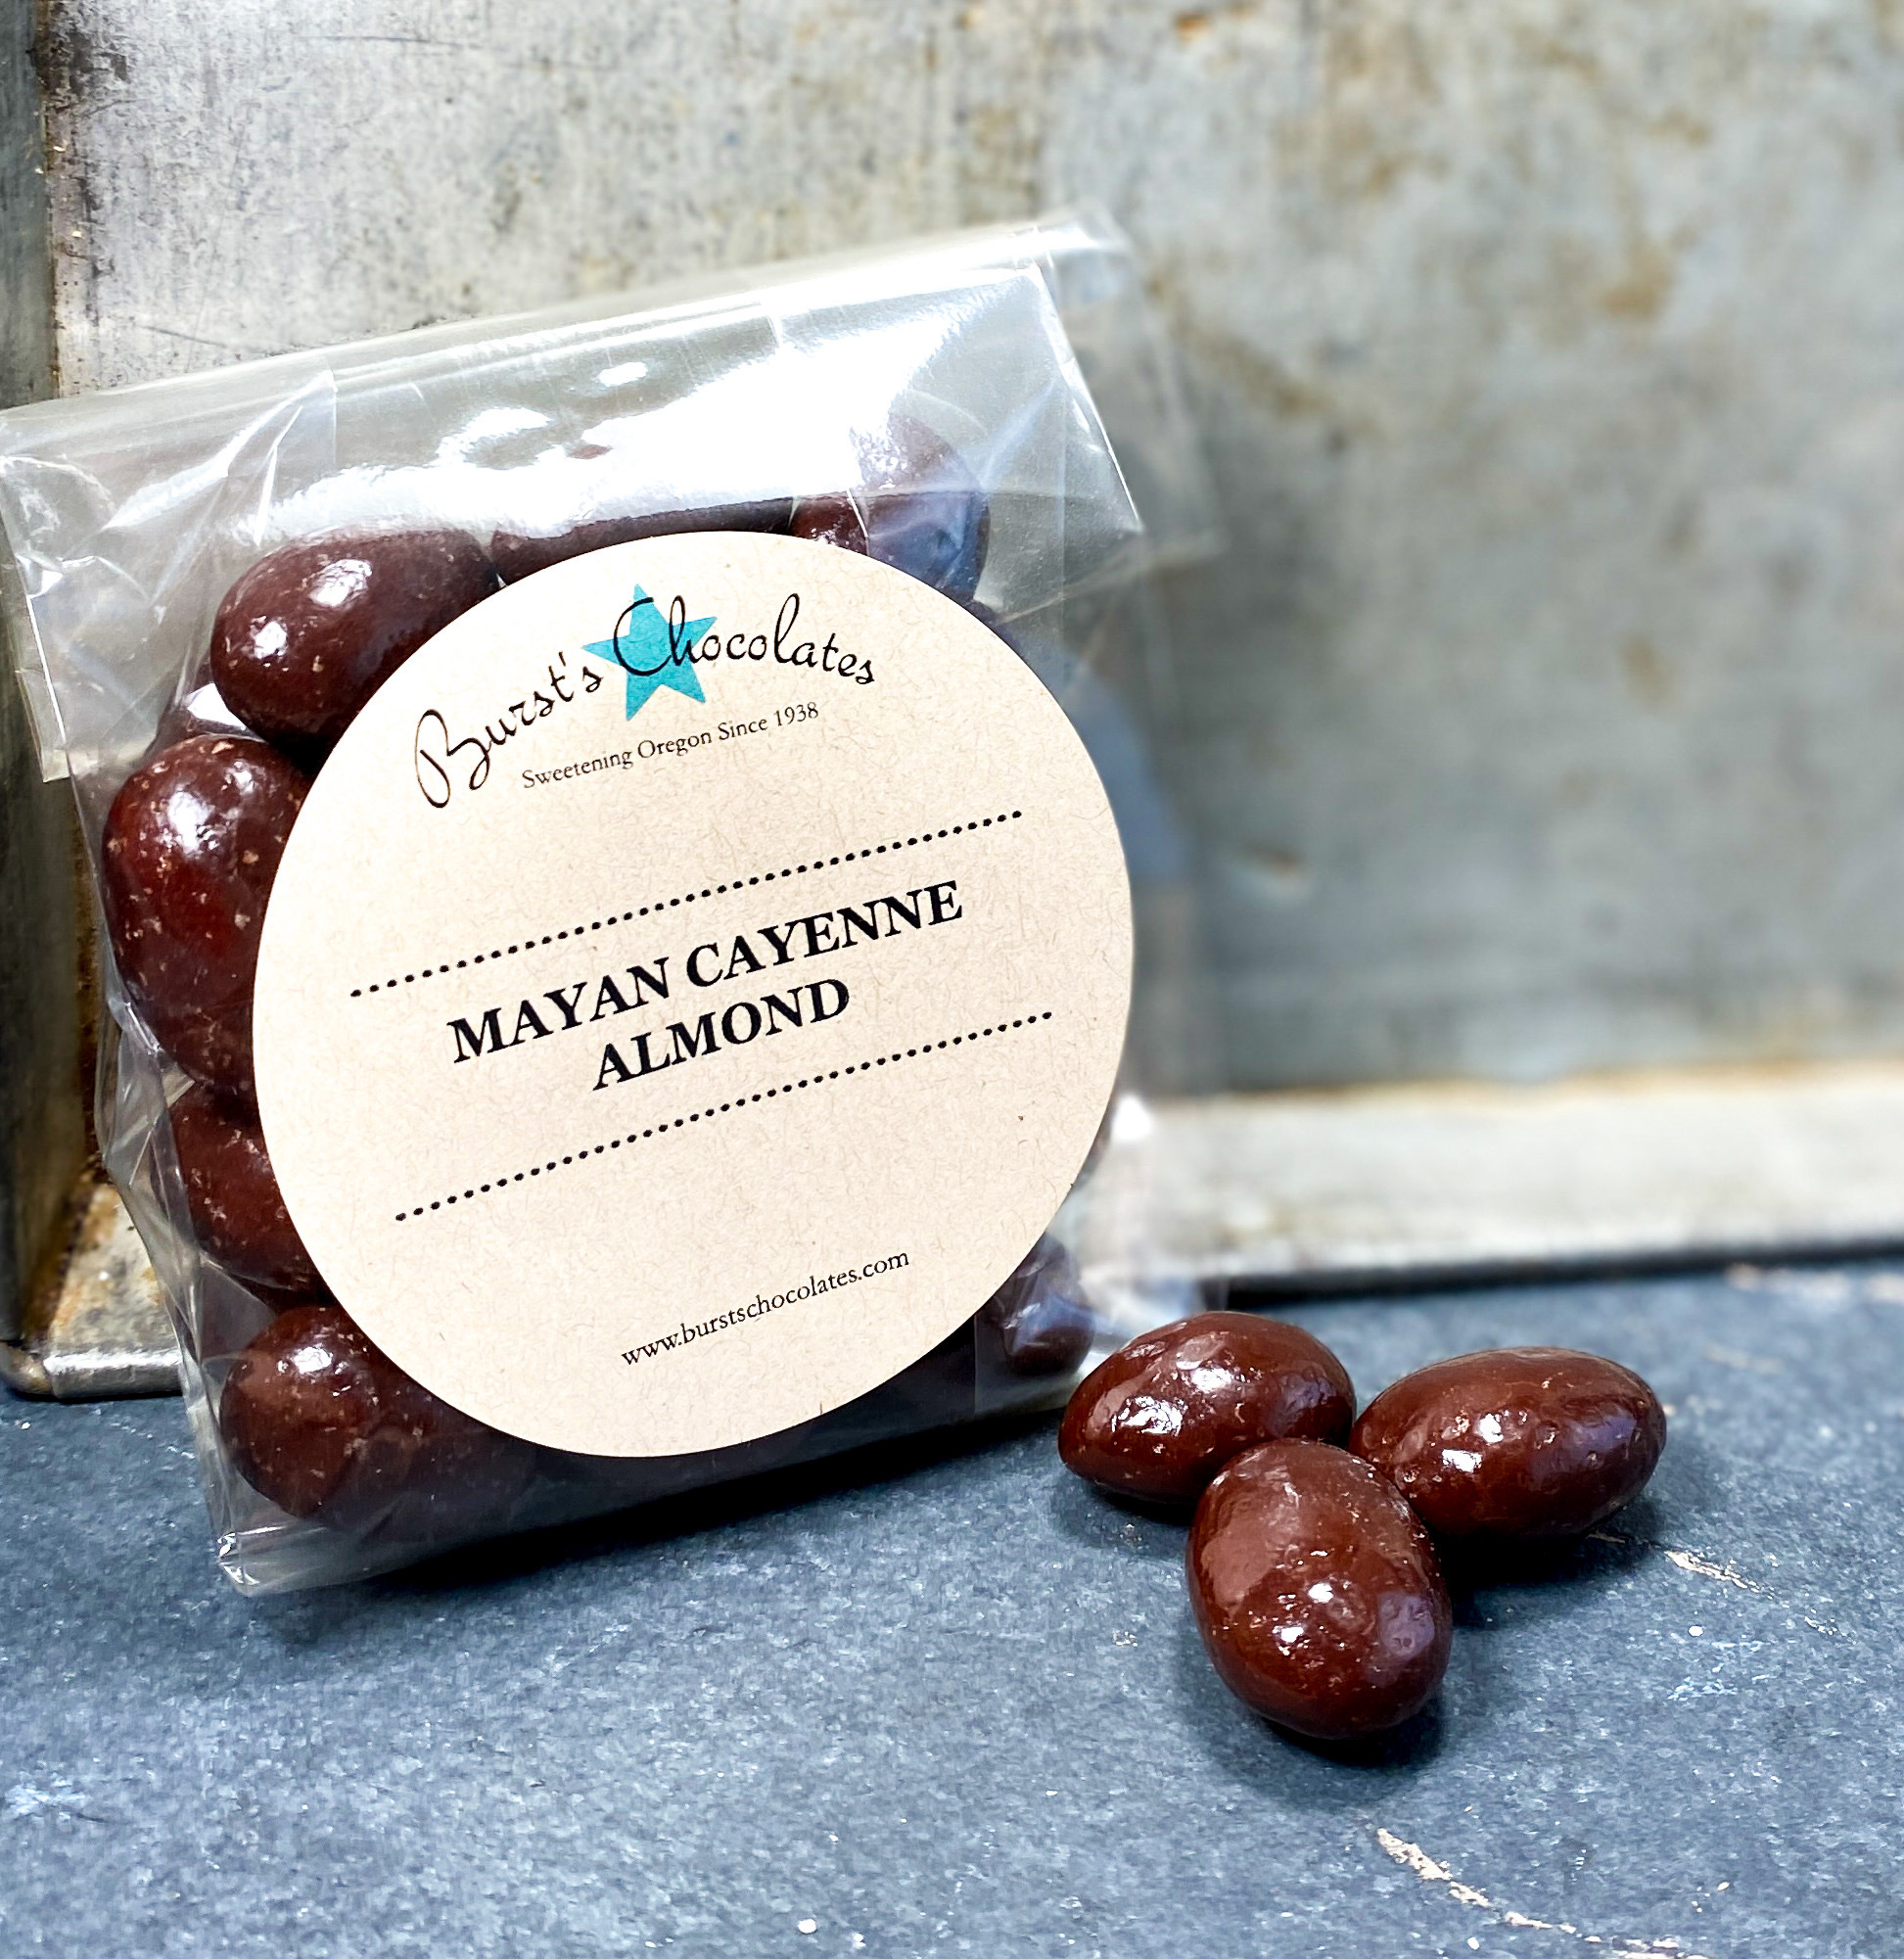 Mayan Cayenne Almonds